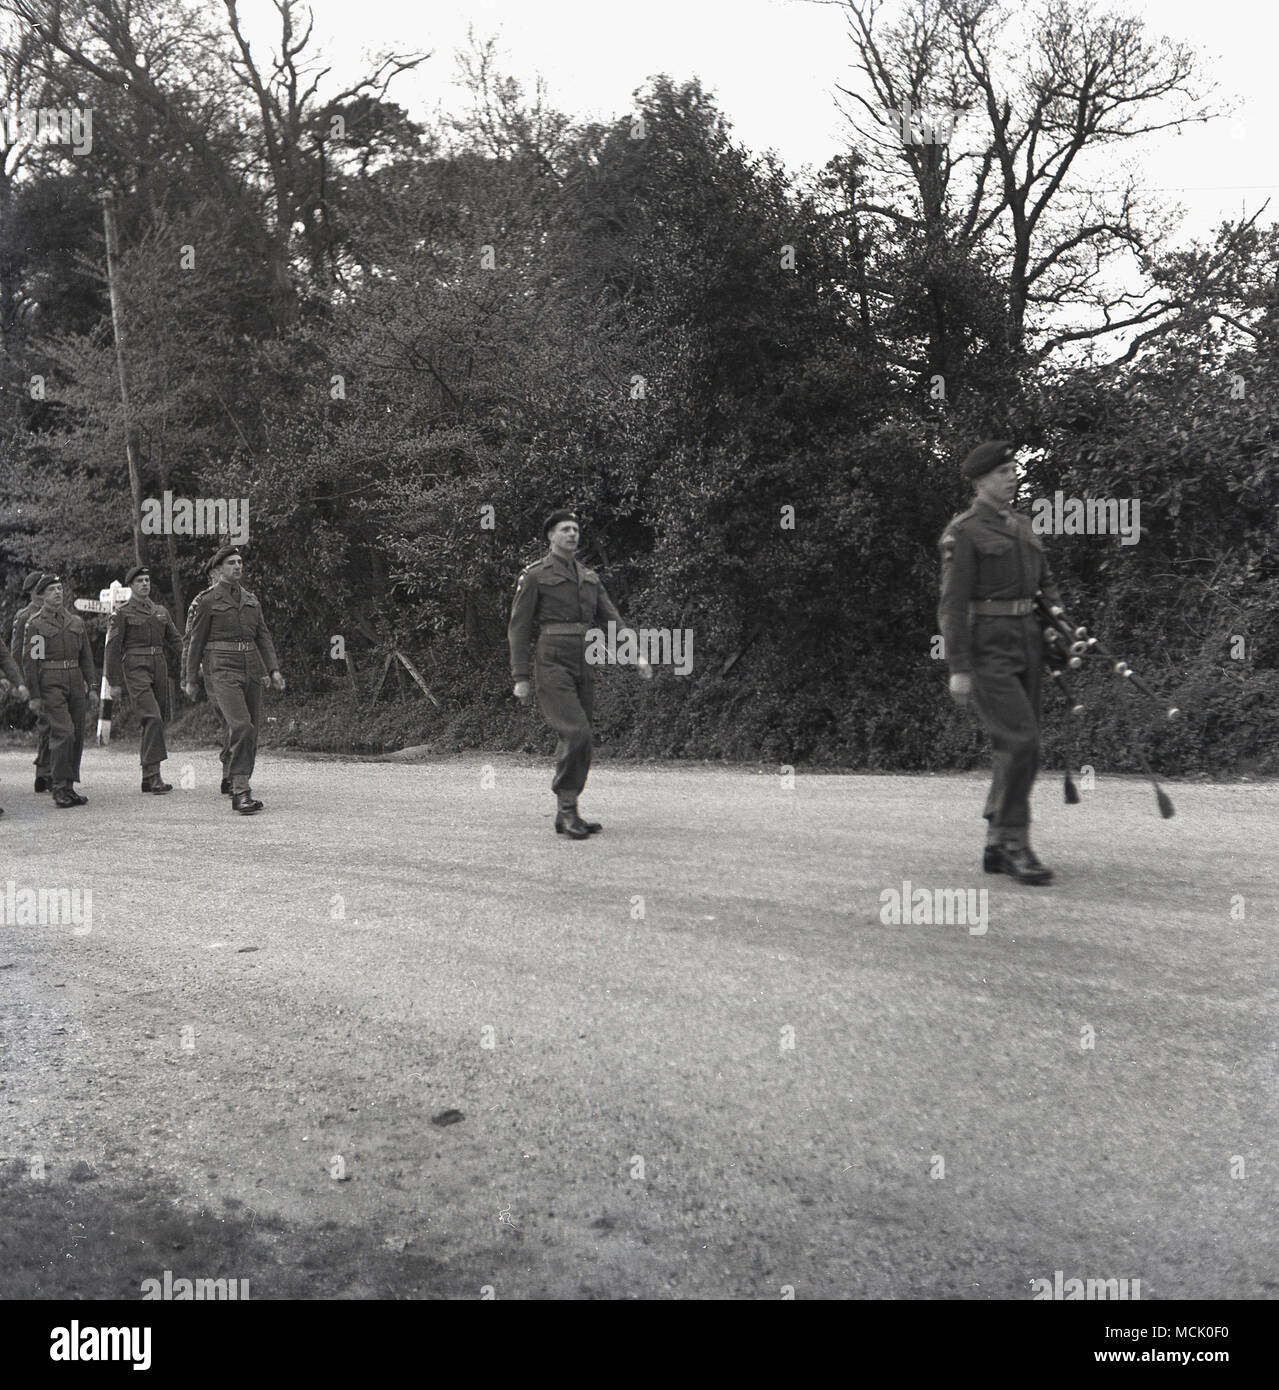 1955, Bucks, England, a piper leads a troop of British soldiers along a track in a forest on a training march, - Stock Image